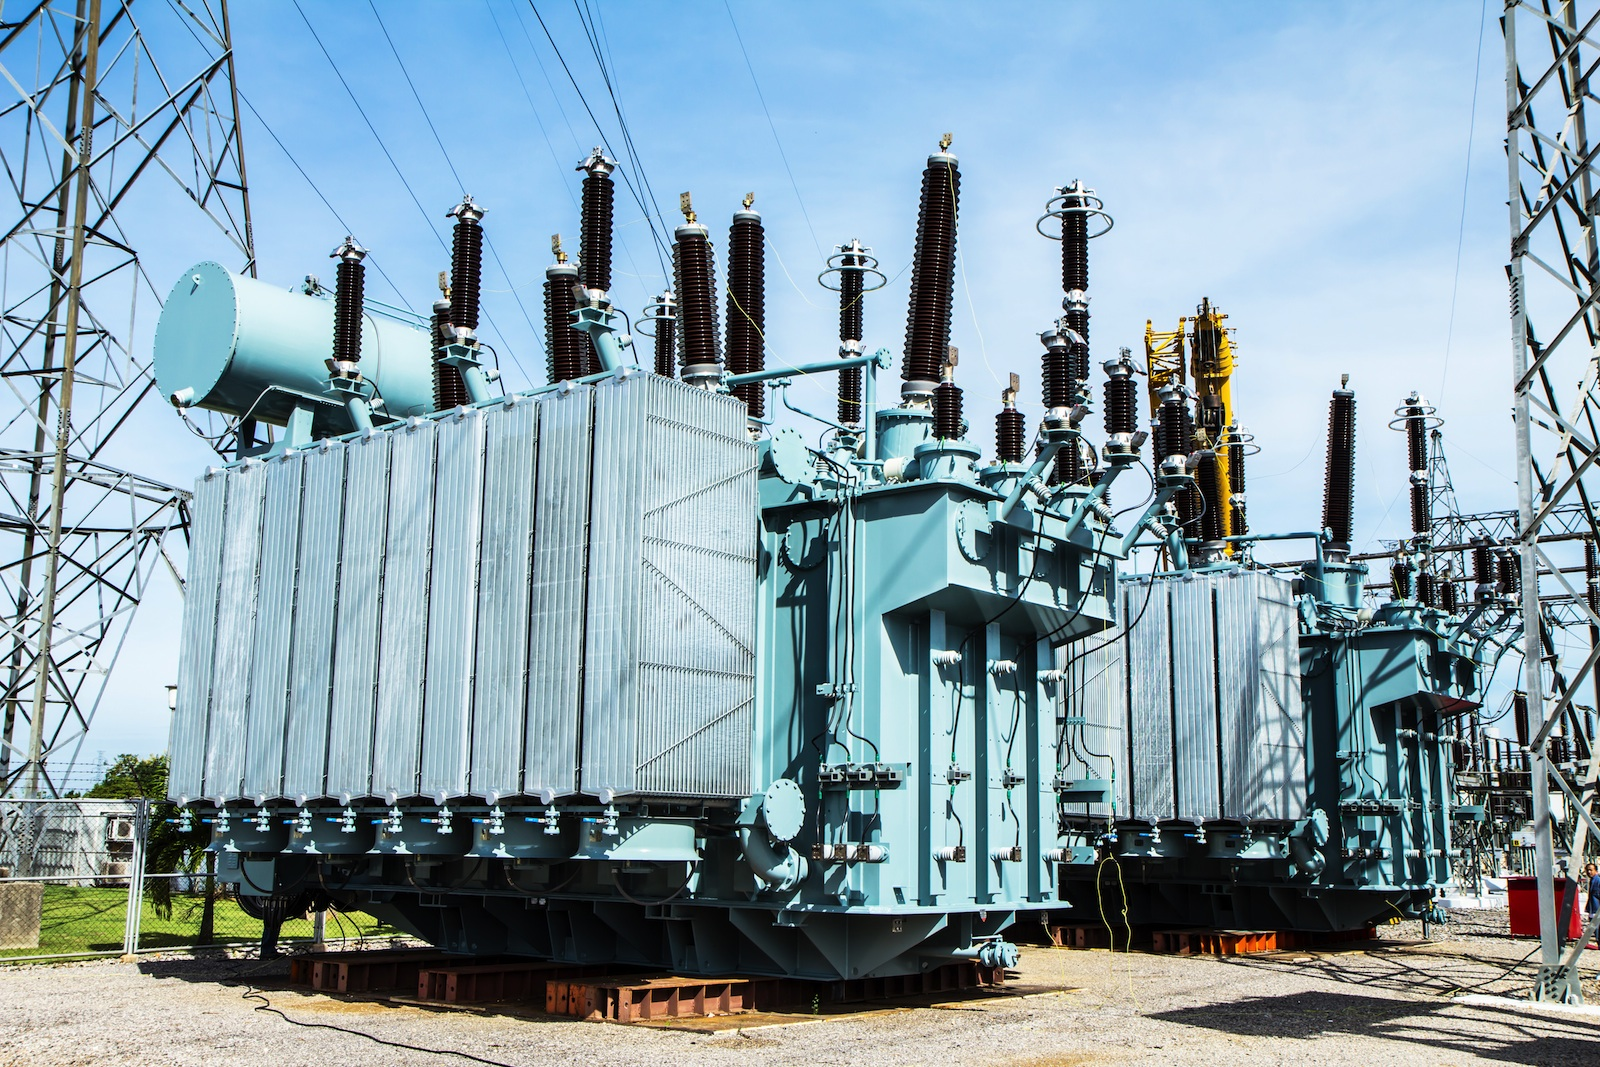 Handle Large Equipment Transformers Recycling Large Industrial Equipment Owl Metals Inc 410-282-0068